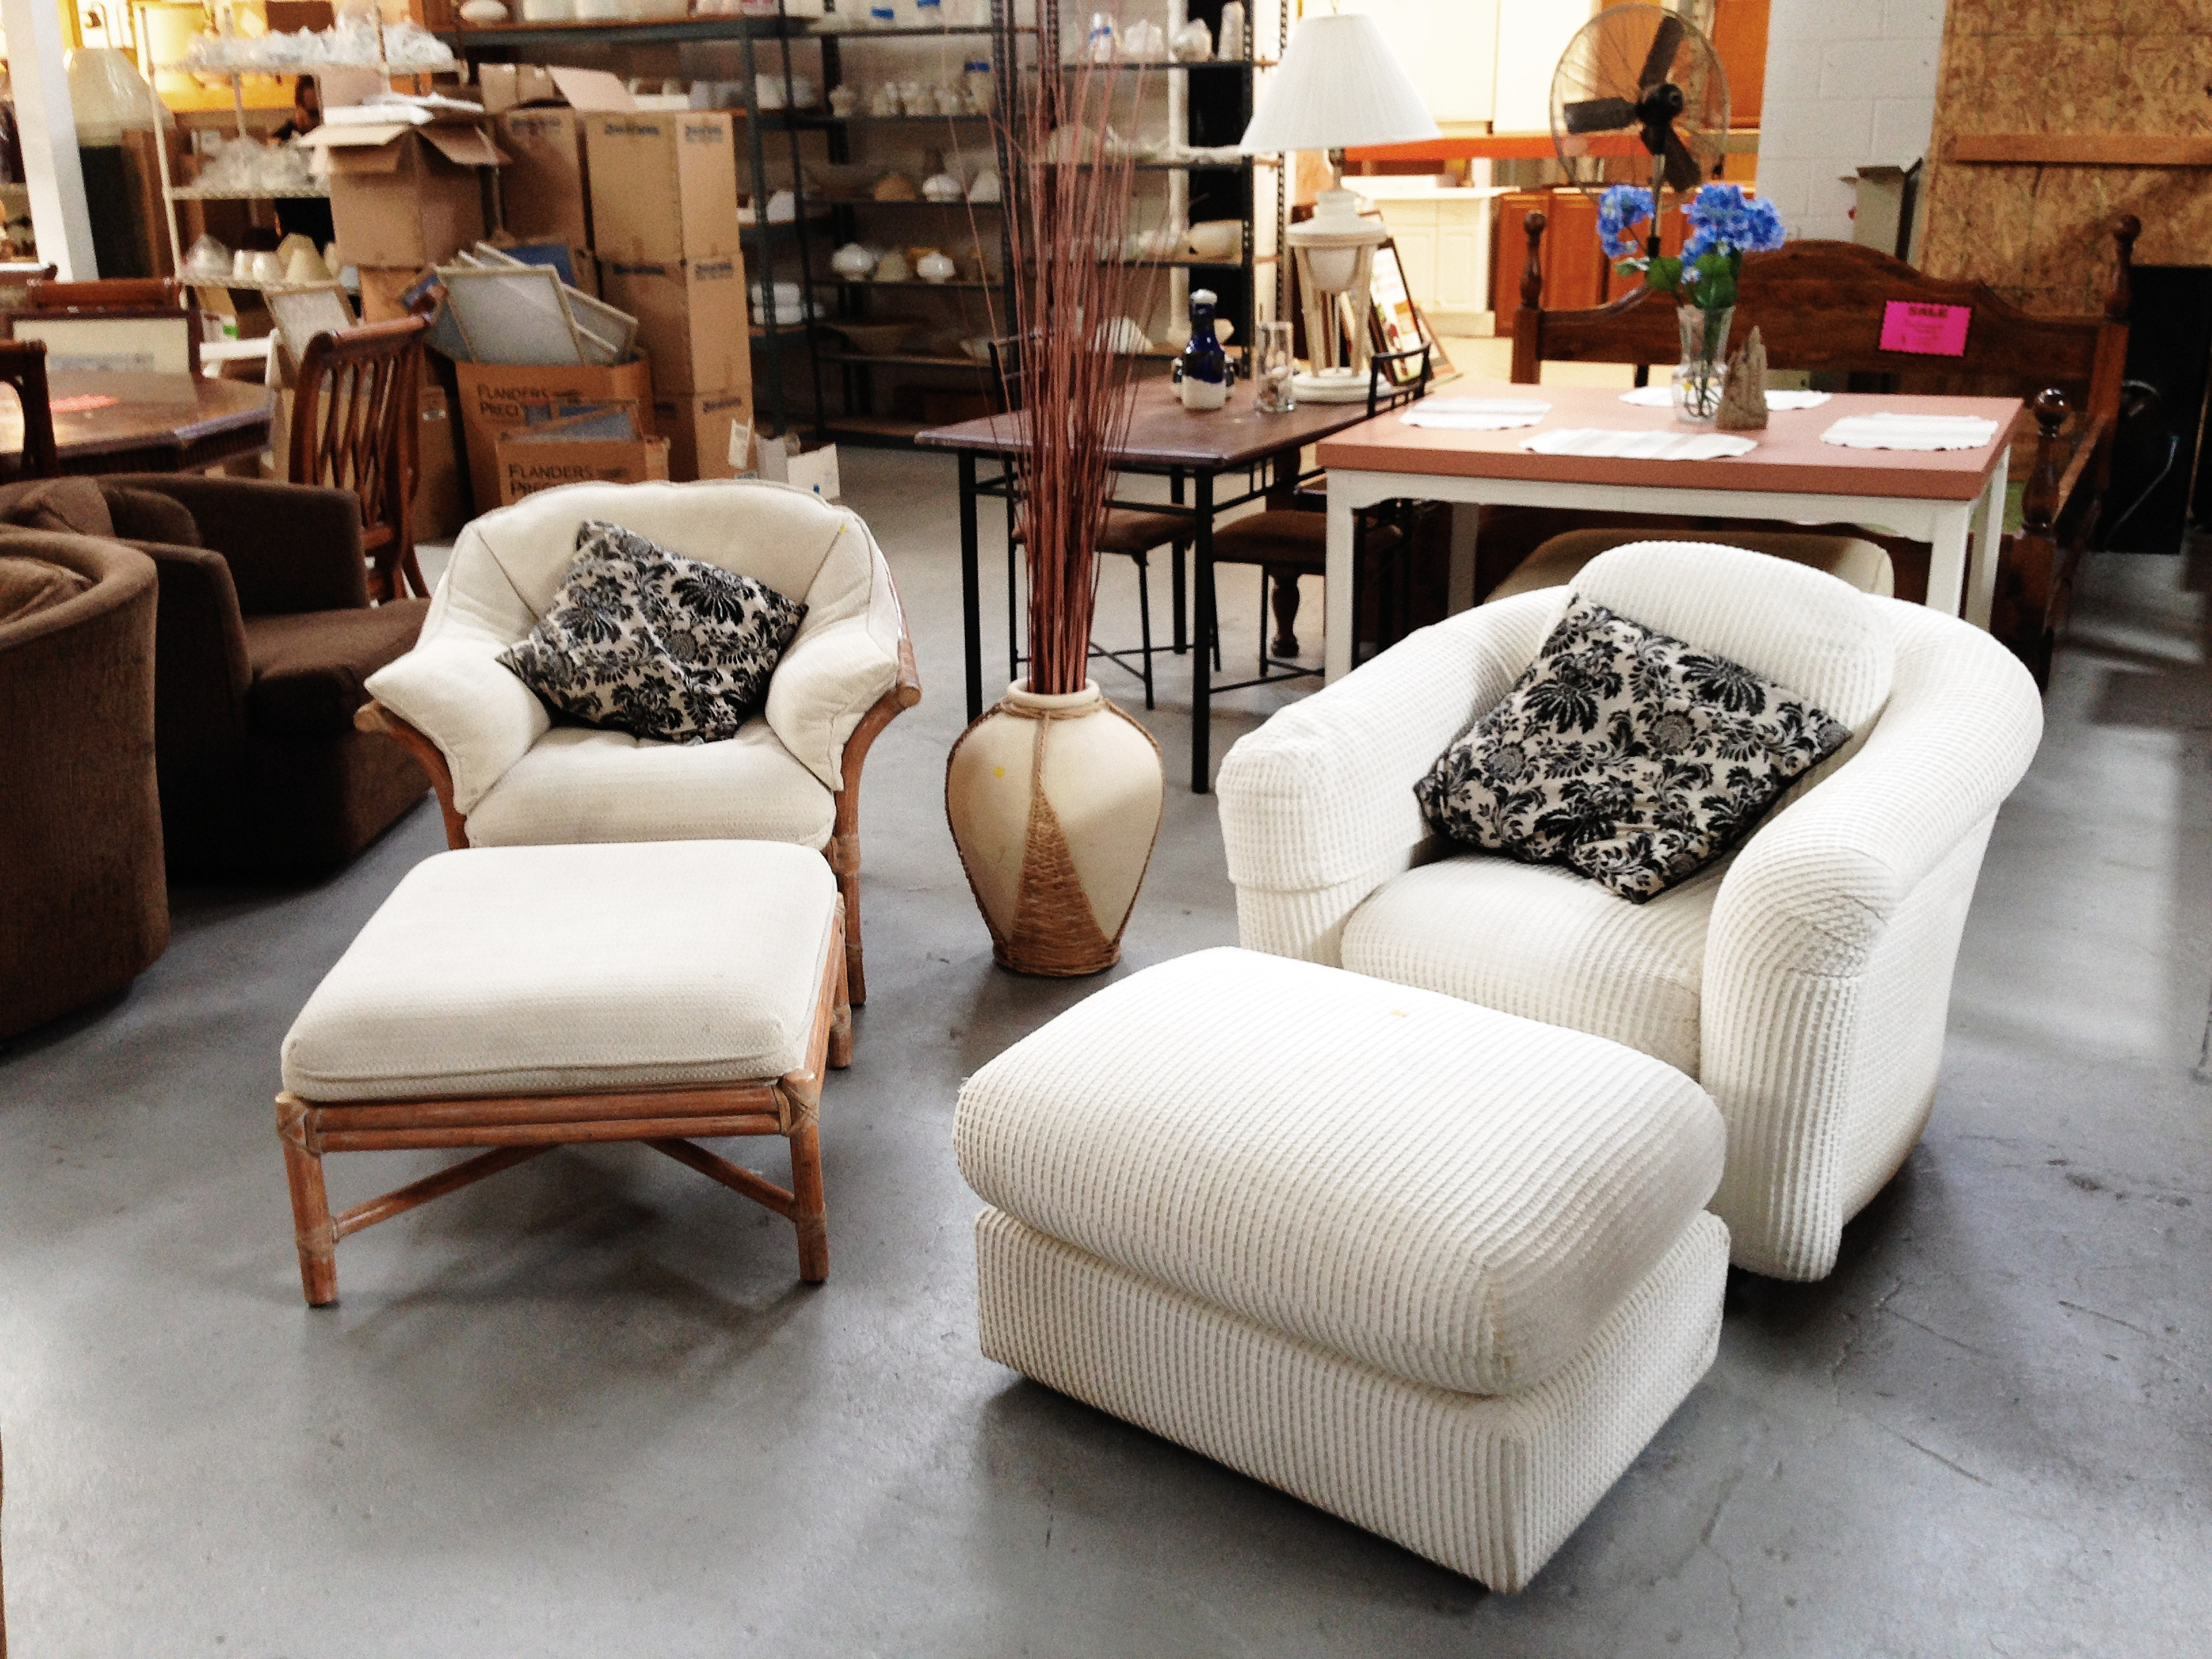 Donate To The Restore With Regard To Escondido Sofa Chairs (Image 12 of 25)